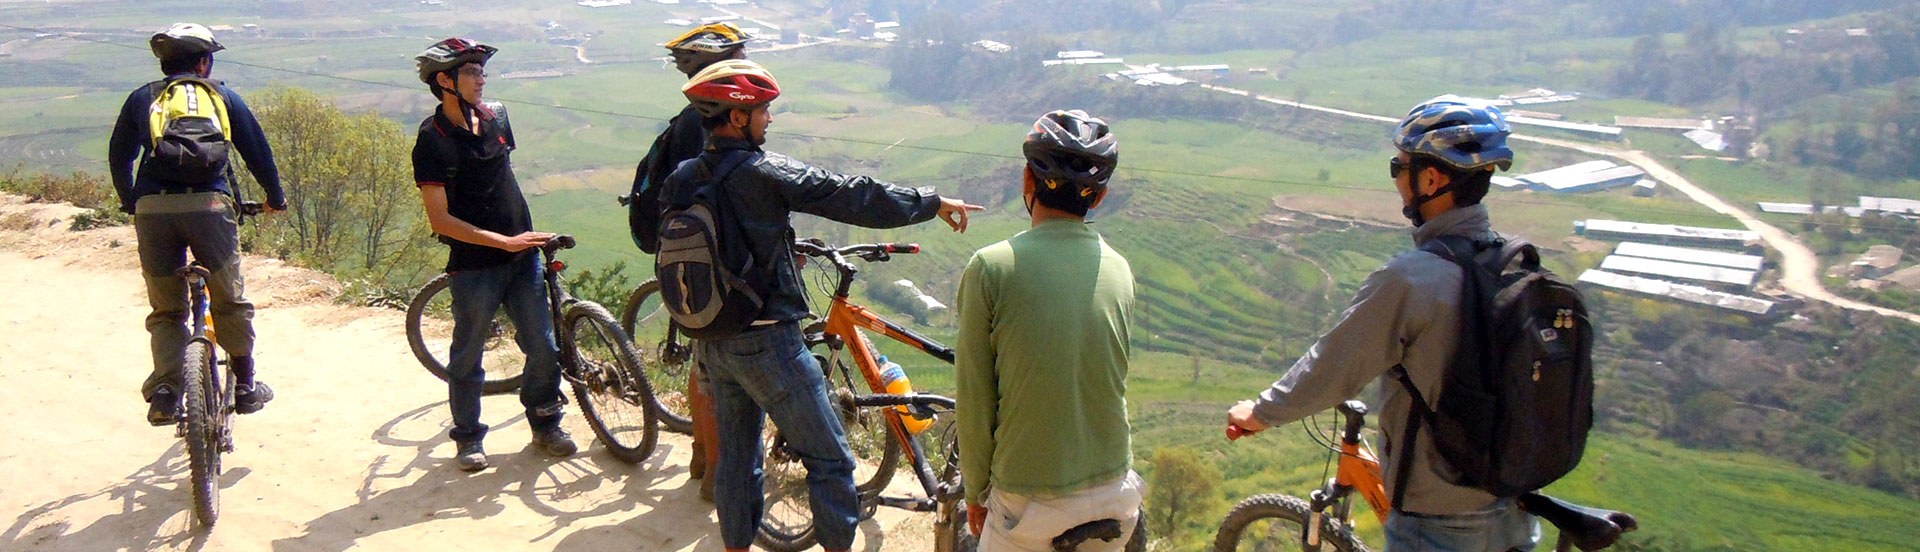 Biking Around Kathmandu Valley